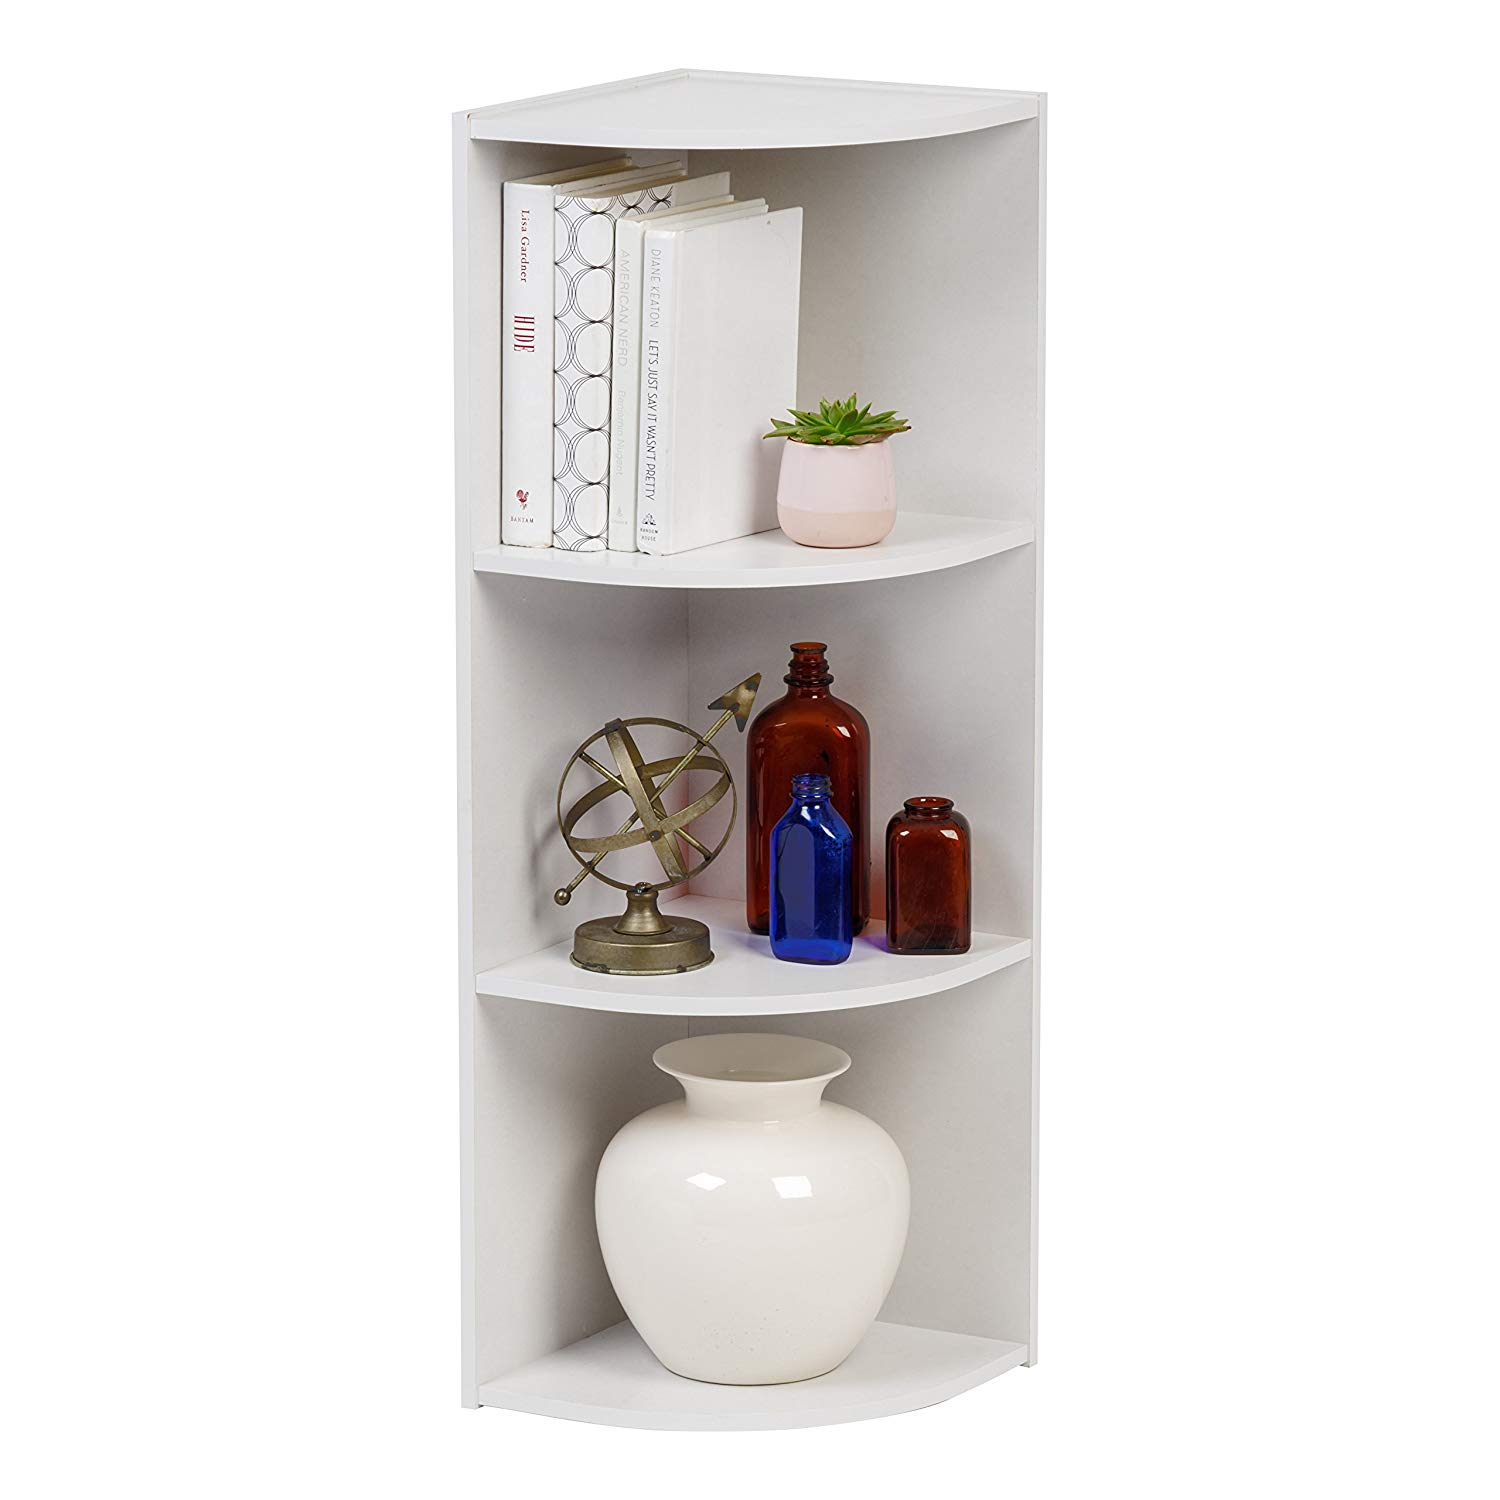 IRIS 3-Tier Corner Curved Shelf Organizer